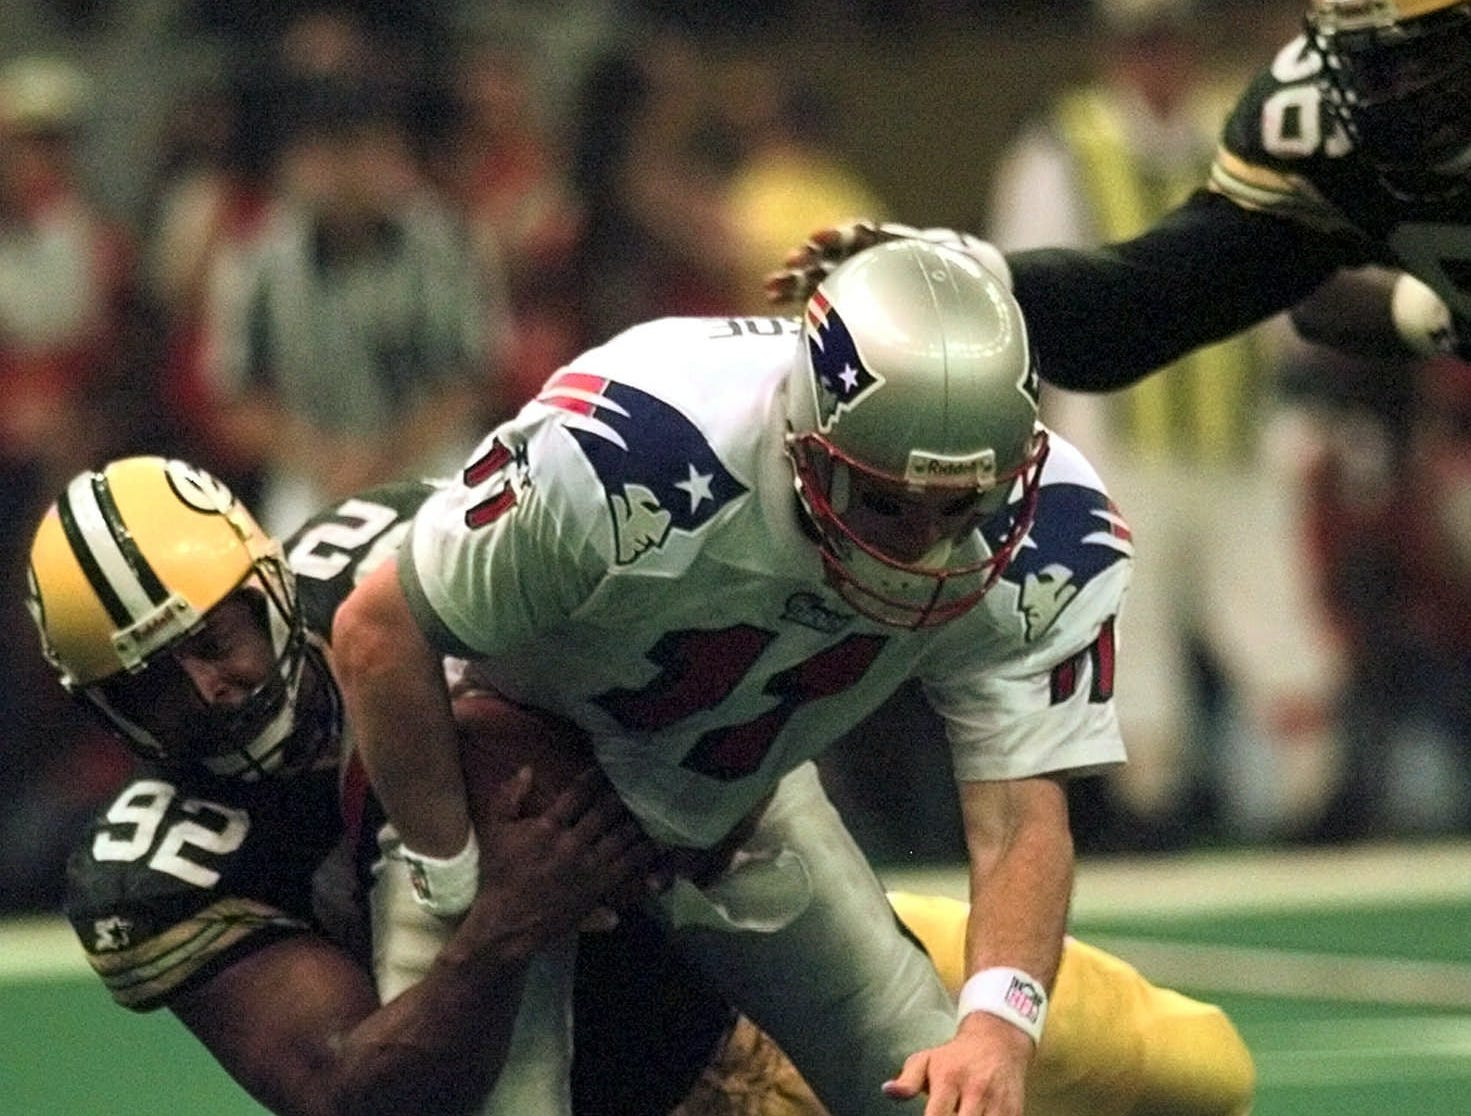 Green Bay Packers defensive end Reggie White (92) sacks New England Patriots quarterback Drew Bledsoe (11) in the third quarter of Super Bowl XXXI Sunday, Jan. 26, 1997 at the Superdome in New Orleans.